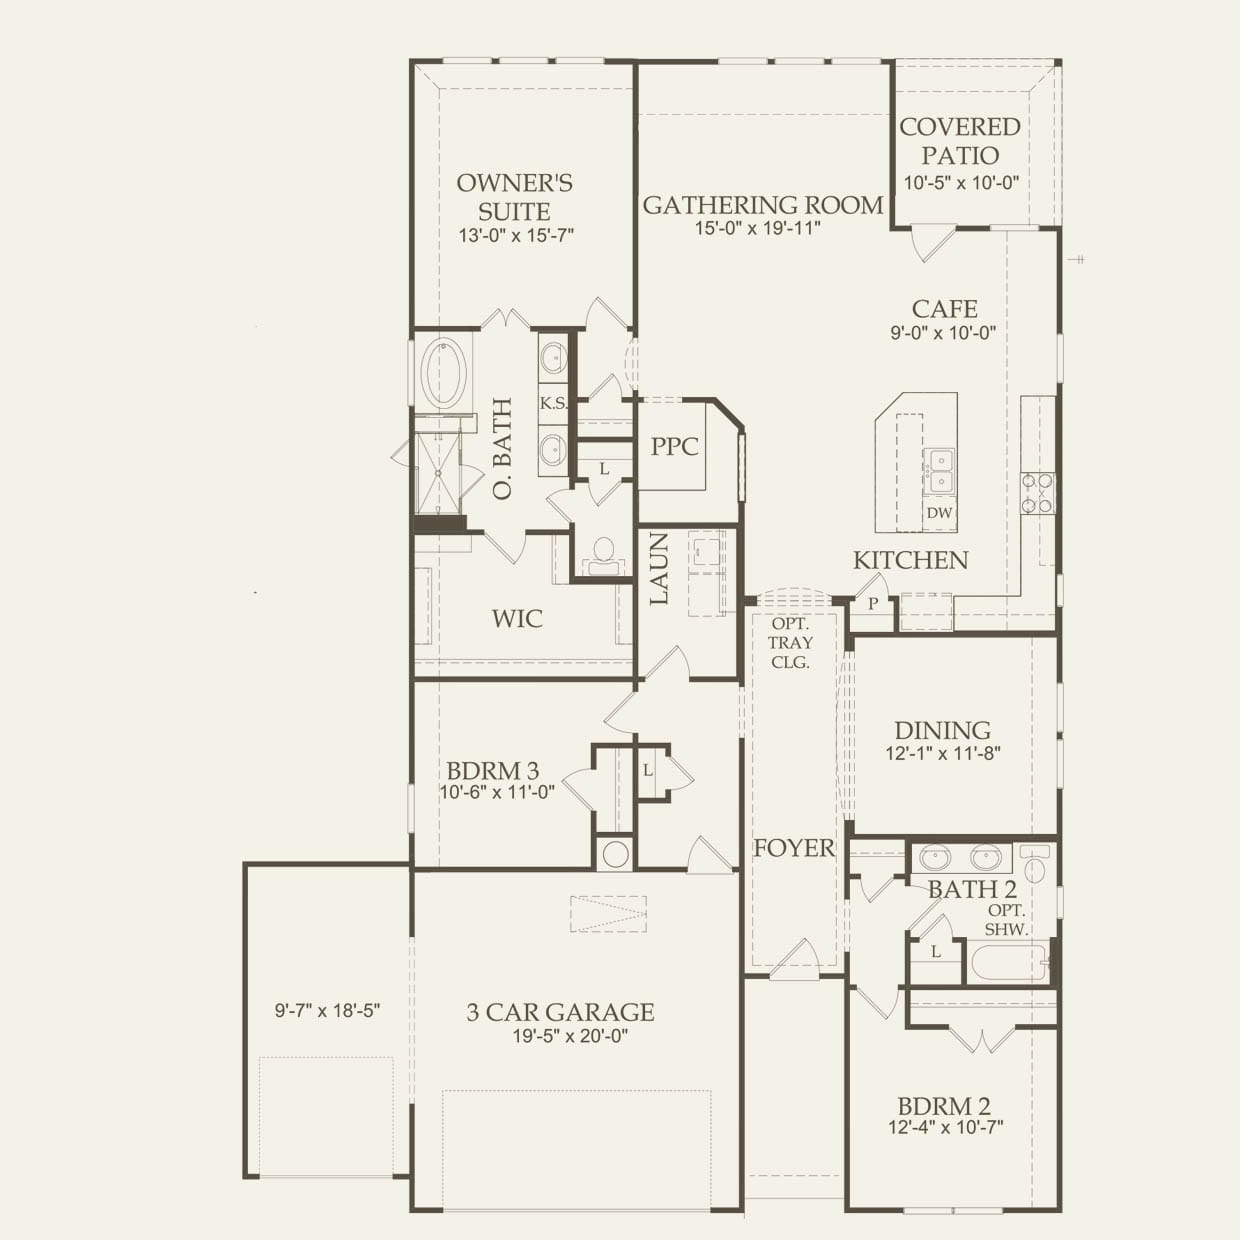 McKinney 3 Car Garage in San Antonio, TX at Davis Ranch | Pulte on ranch home plans with pool, duplex plans with no garage, ranch home plans with breezeway, small house plans with no garage, ranch home plans with carport,